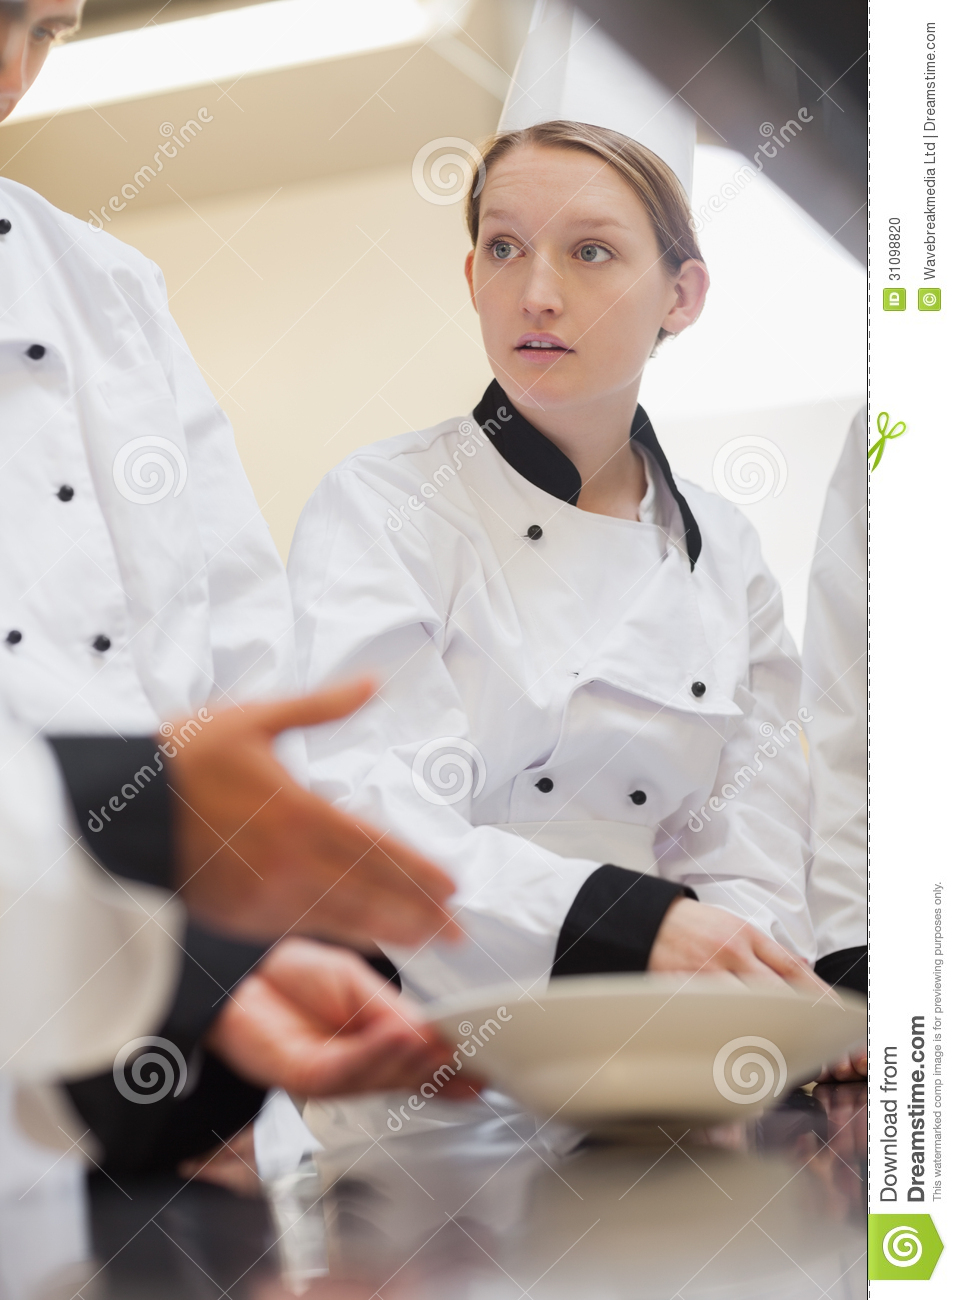 Trainee Chef Listening To Teacher Stock Photo - Image: 31098820